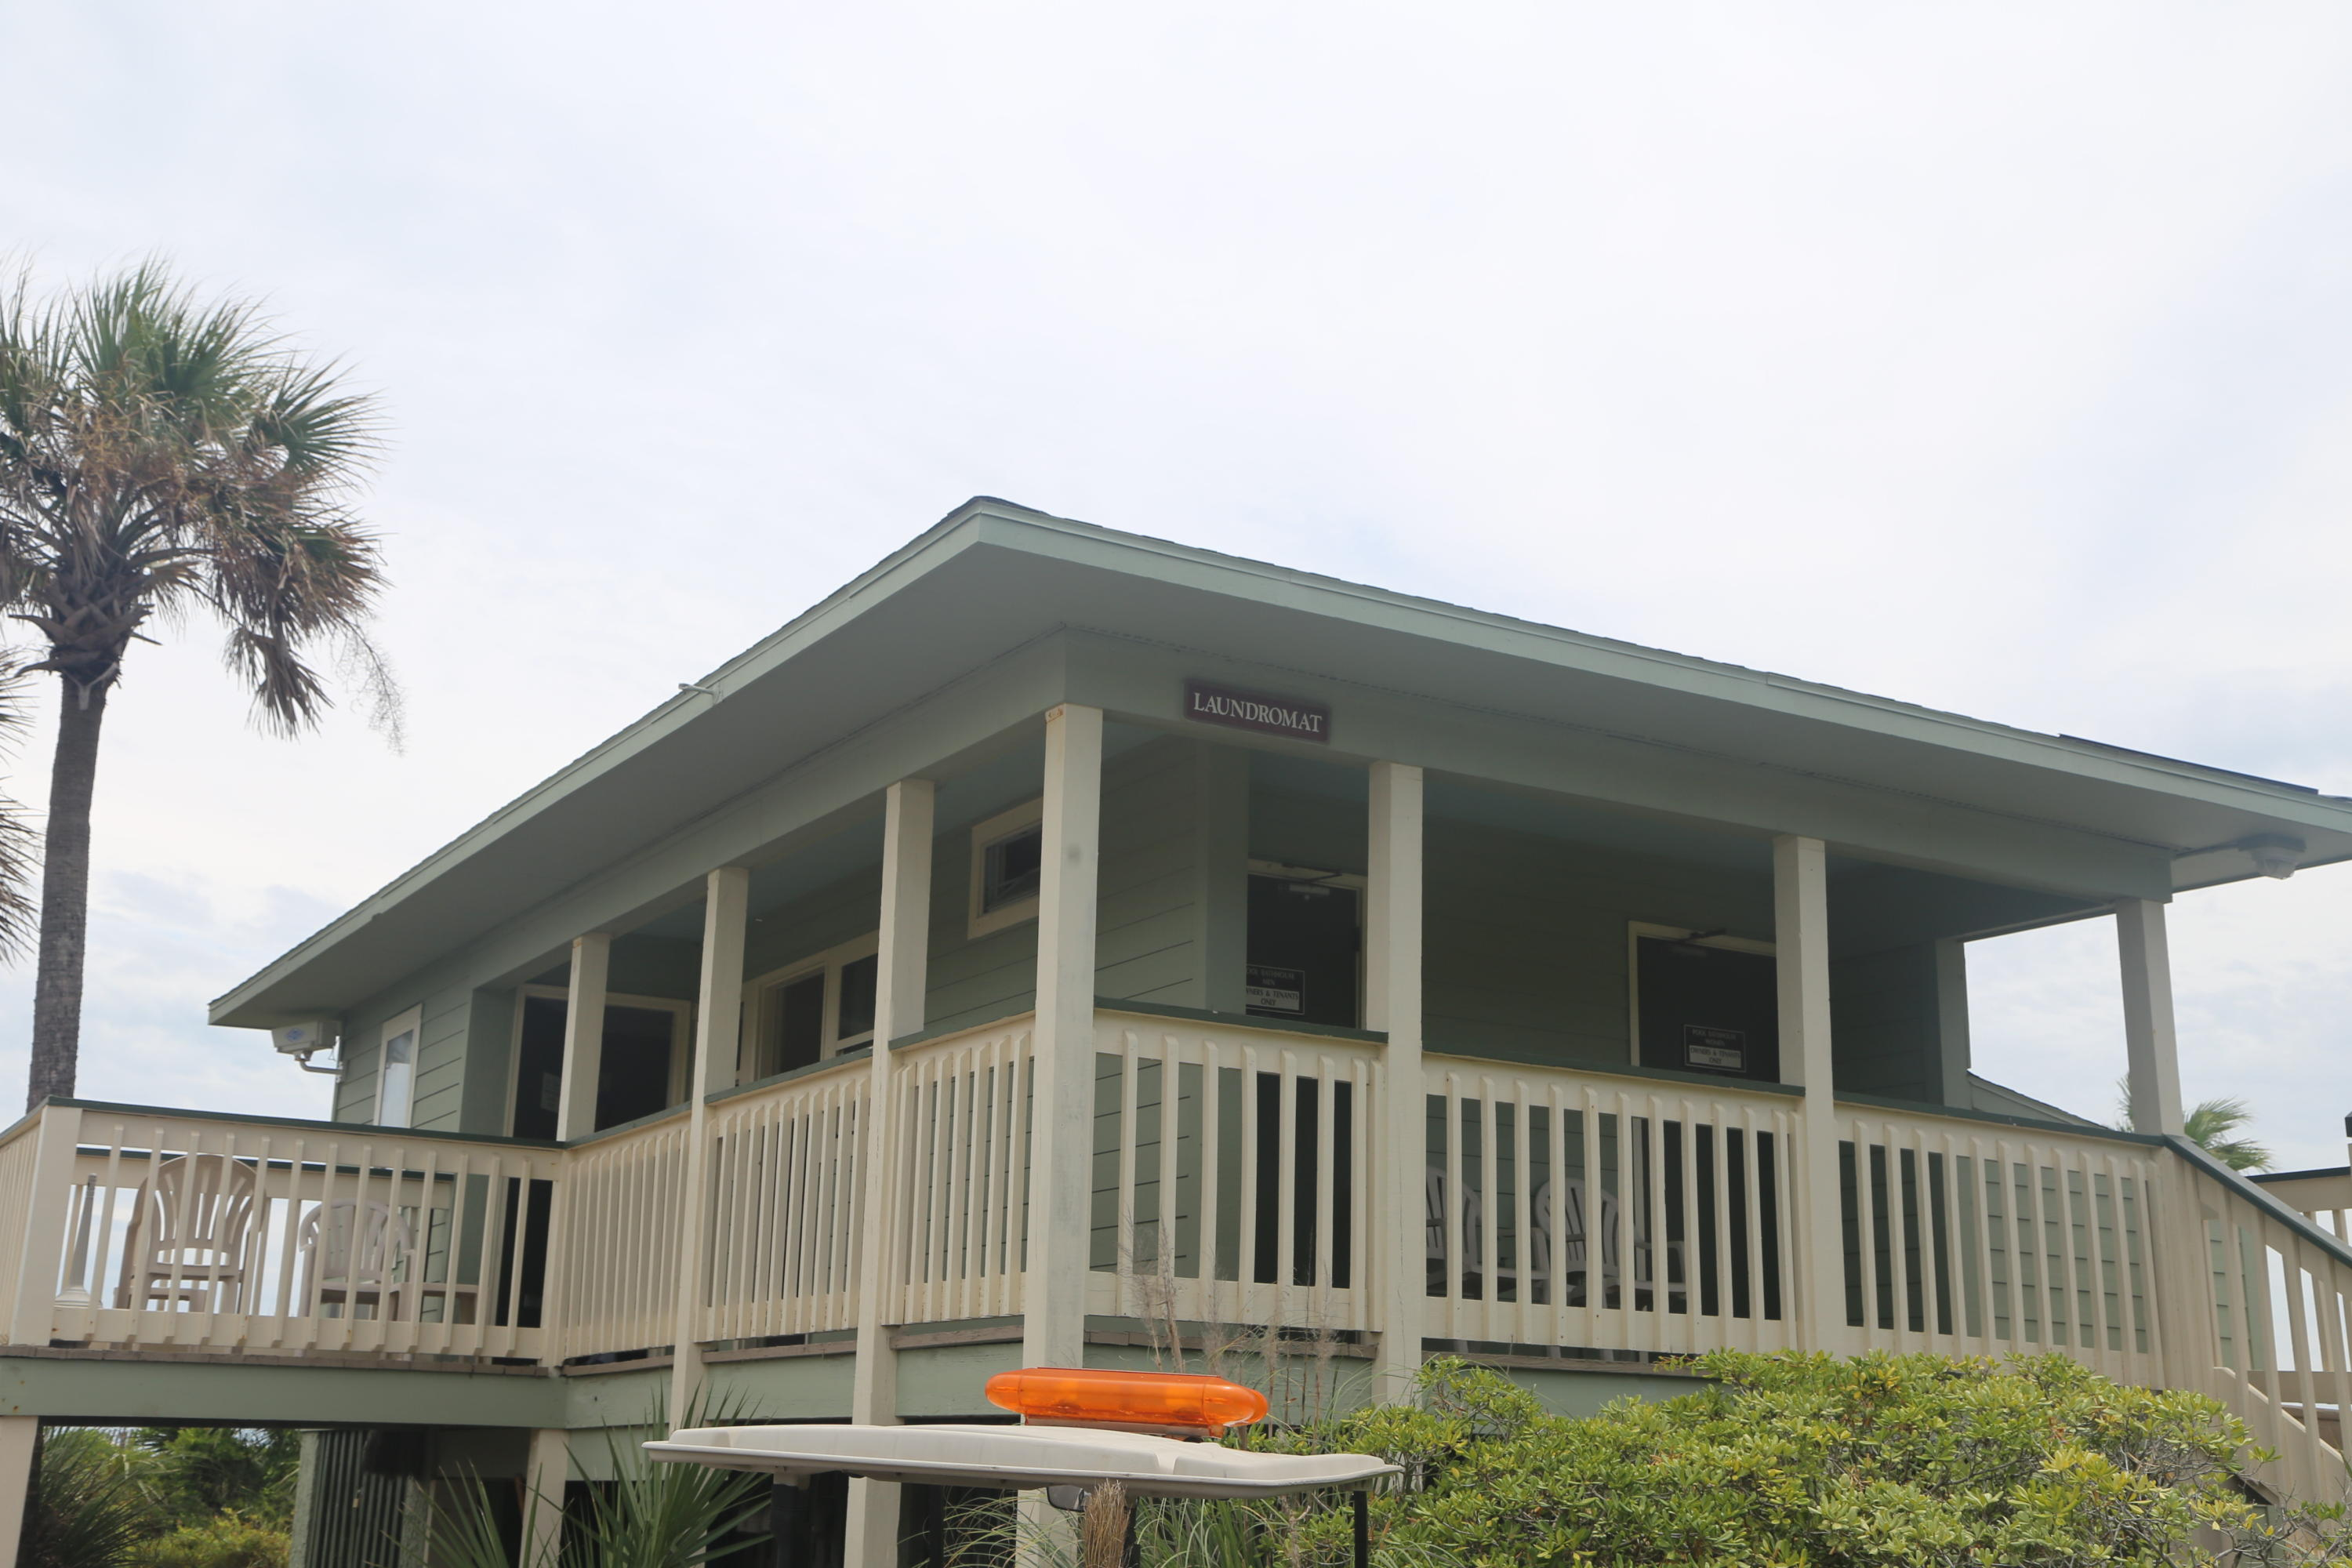 Sea Cabin On The Ocean Homes For Sale - 1300 Ocean, Isle of Palms, SC - 9